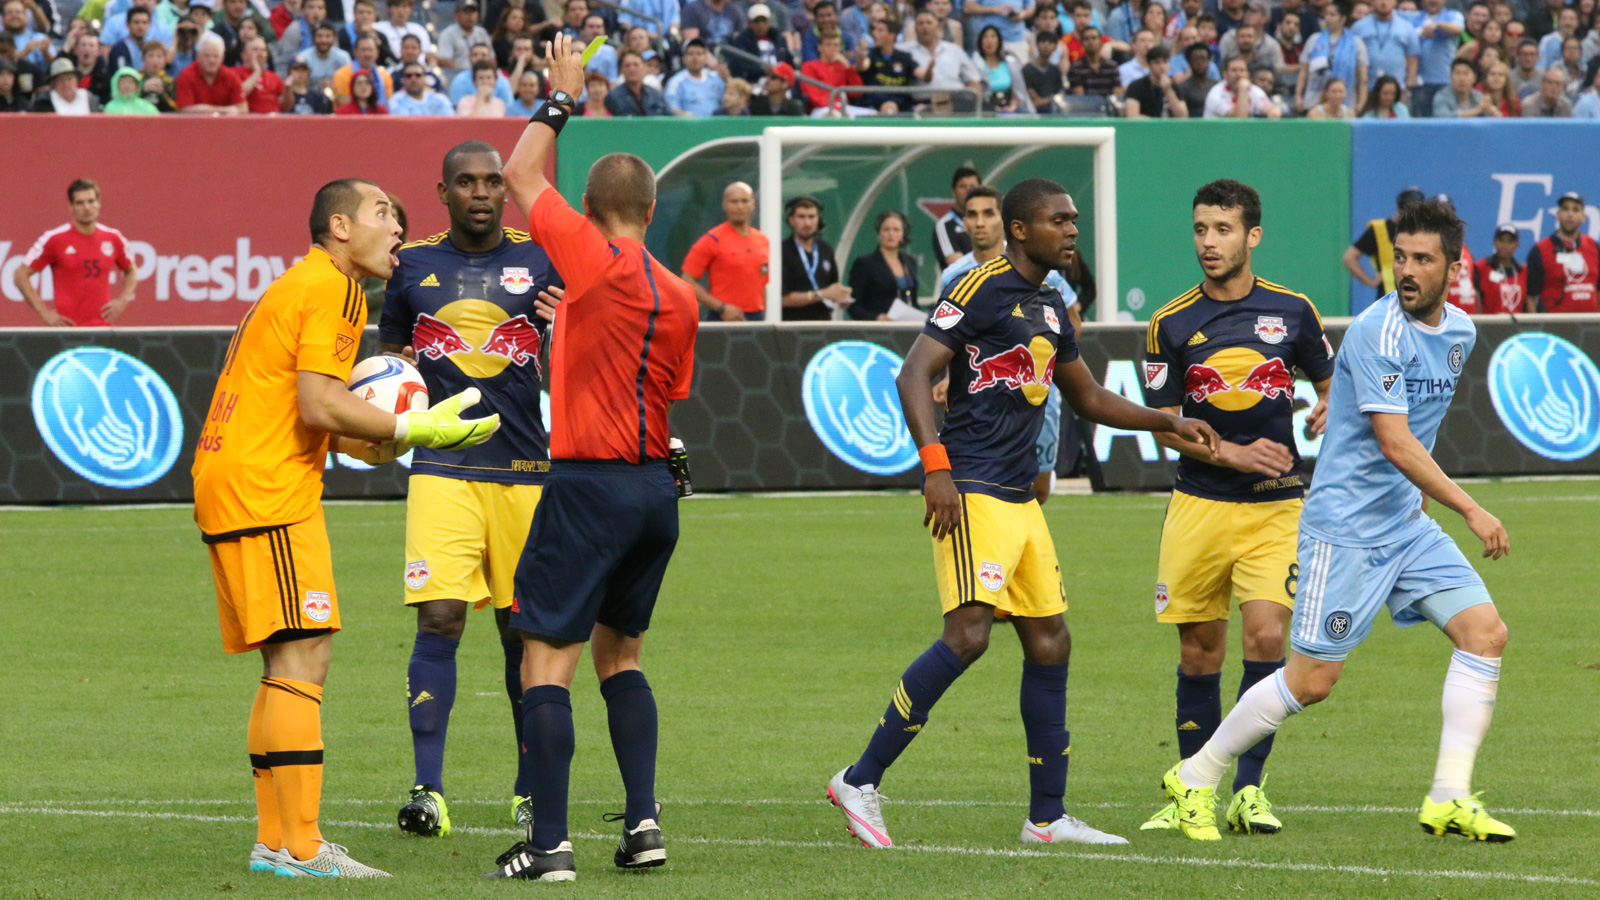 New York Red Bulls goalkeeper Luis Robles (right) reacts to receiving a yellow card for a foul on NYCFC striker David Villa (far right).